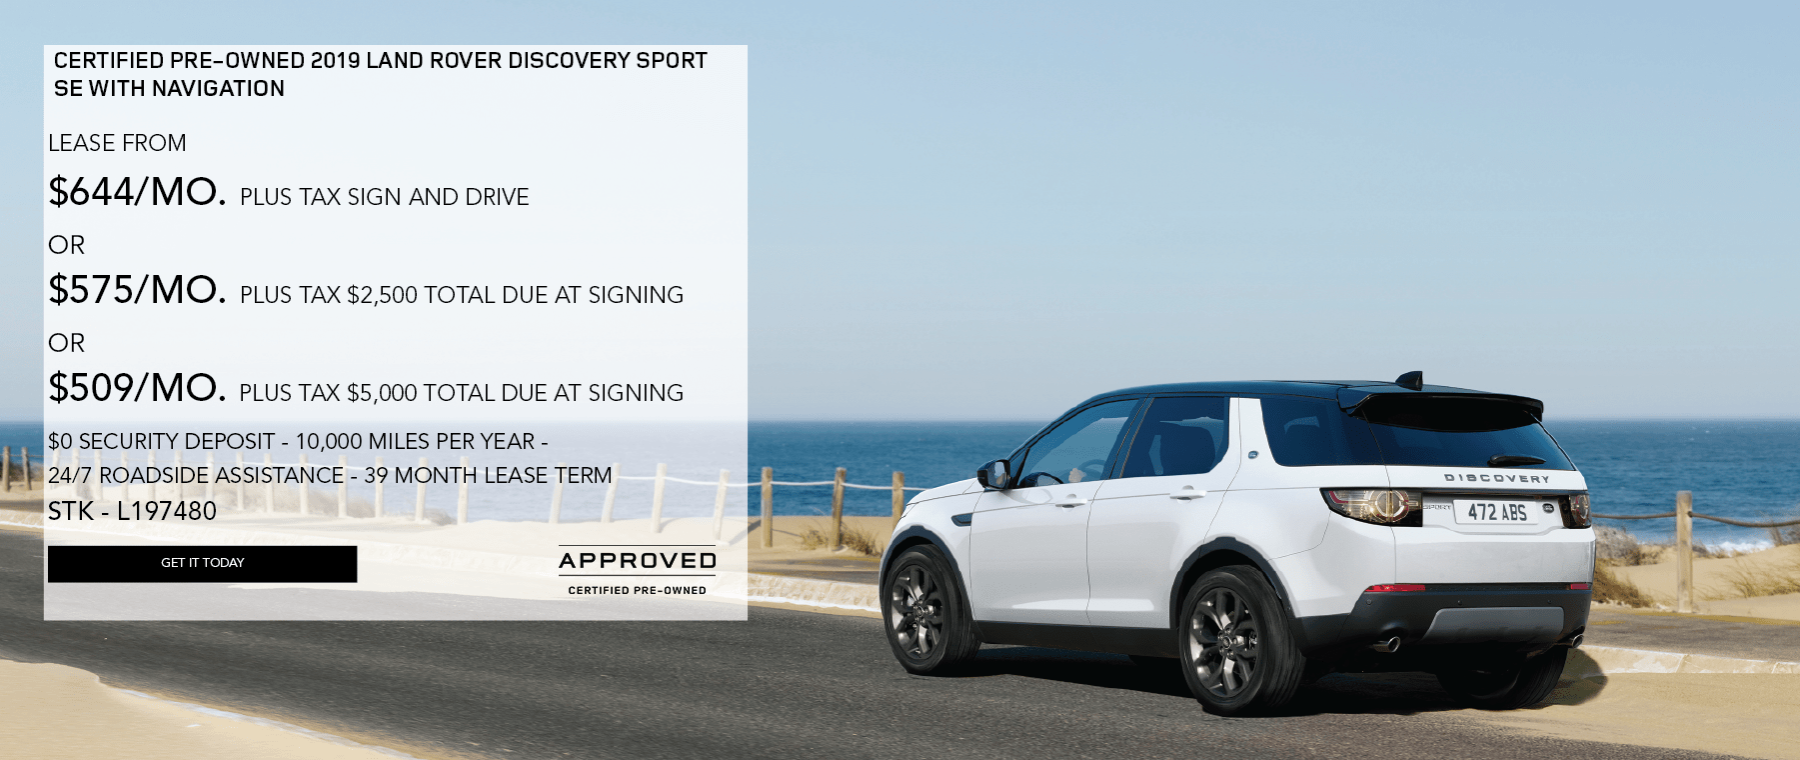 CERTIFIED PRE-OWNED 2019 LAND ROVER DISCOVERY SPORT SE. LEASE FROM $644PER MONTH PLUS TAX SIGN AND DRIVE. OR $575 PER MONTH. PLUS TAX WITH 2,500 TOTAL DUE AT SIGNING. OR $509 PER MONTH. WITH $5,000 TOTAL DUE AT SIGNING. $0 SECURITY DEPOSIT. 10,000 MILES PER YEAR. 24/7 ROADSIDE ASSISTANCE. 39 MONTH. LEASE TERM STOCK NUMBER L197480. WHITE DISCOVERY SPORT DRIVING DOWN ROAD NEAR BEACH.